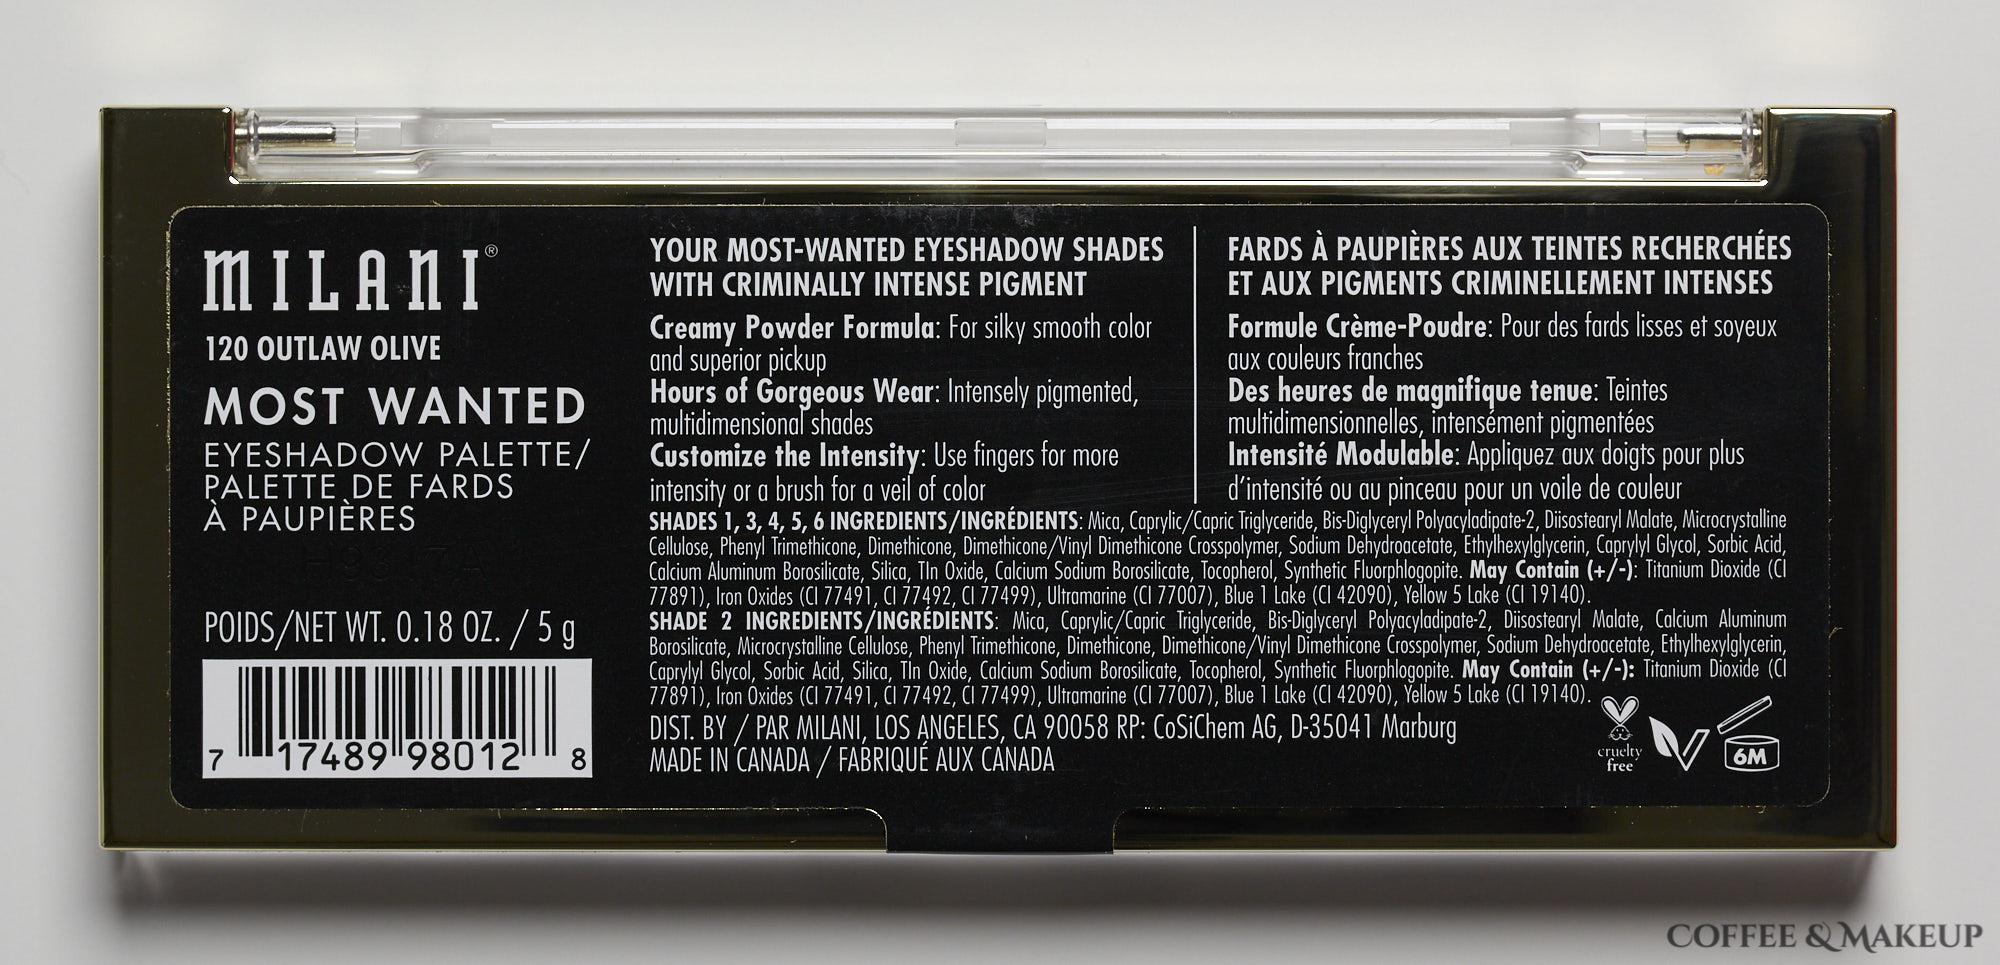 Milani Outlaw Olive Most Wanted Eyeshadow Palette